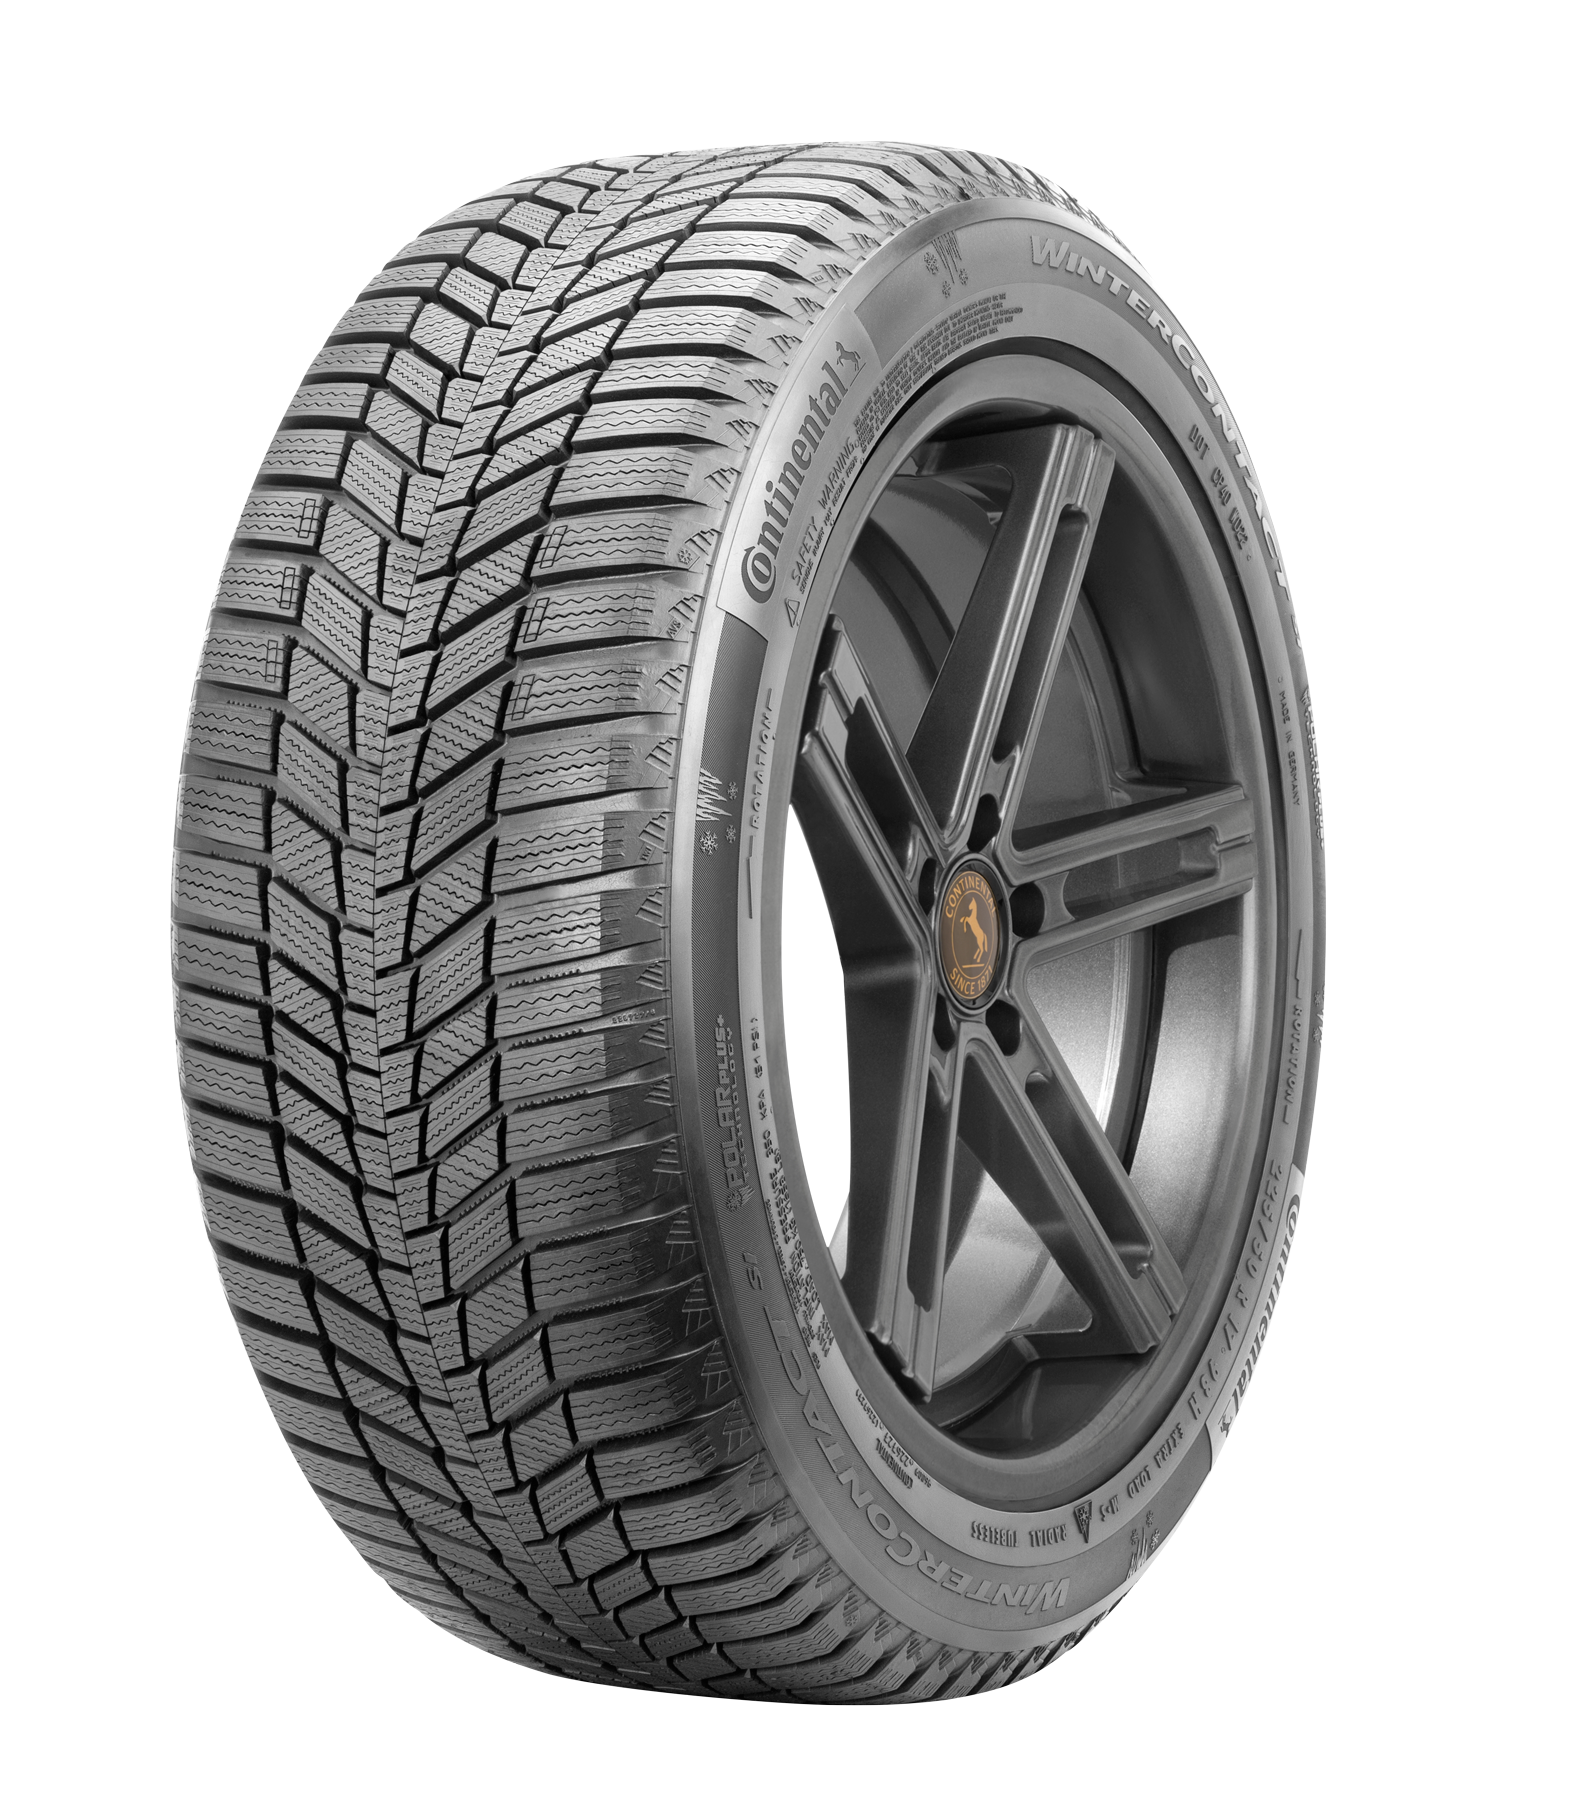 Best Continental Tires For Cars